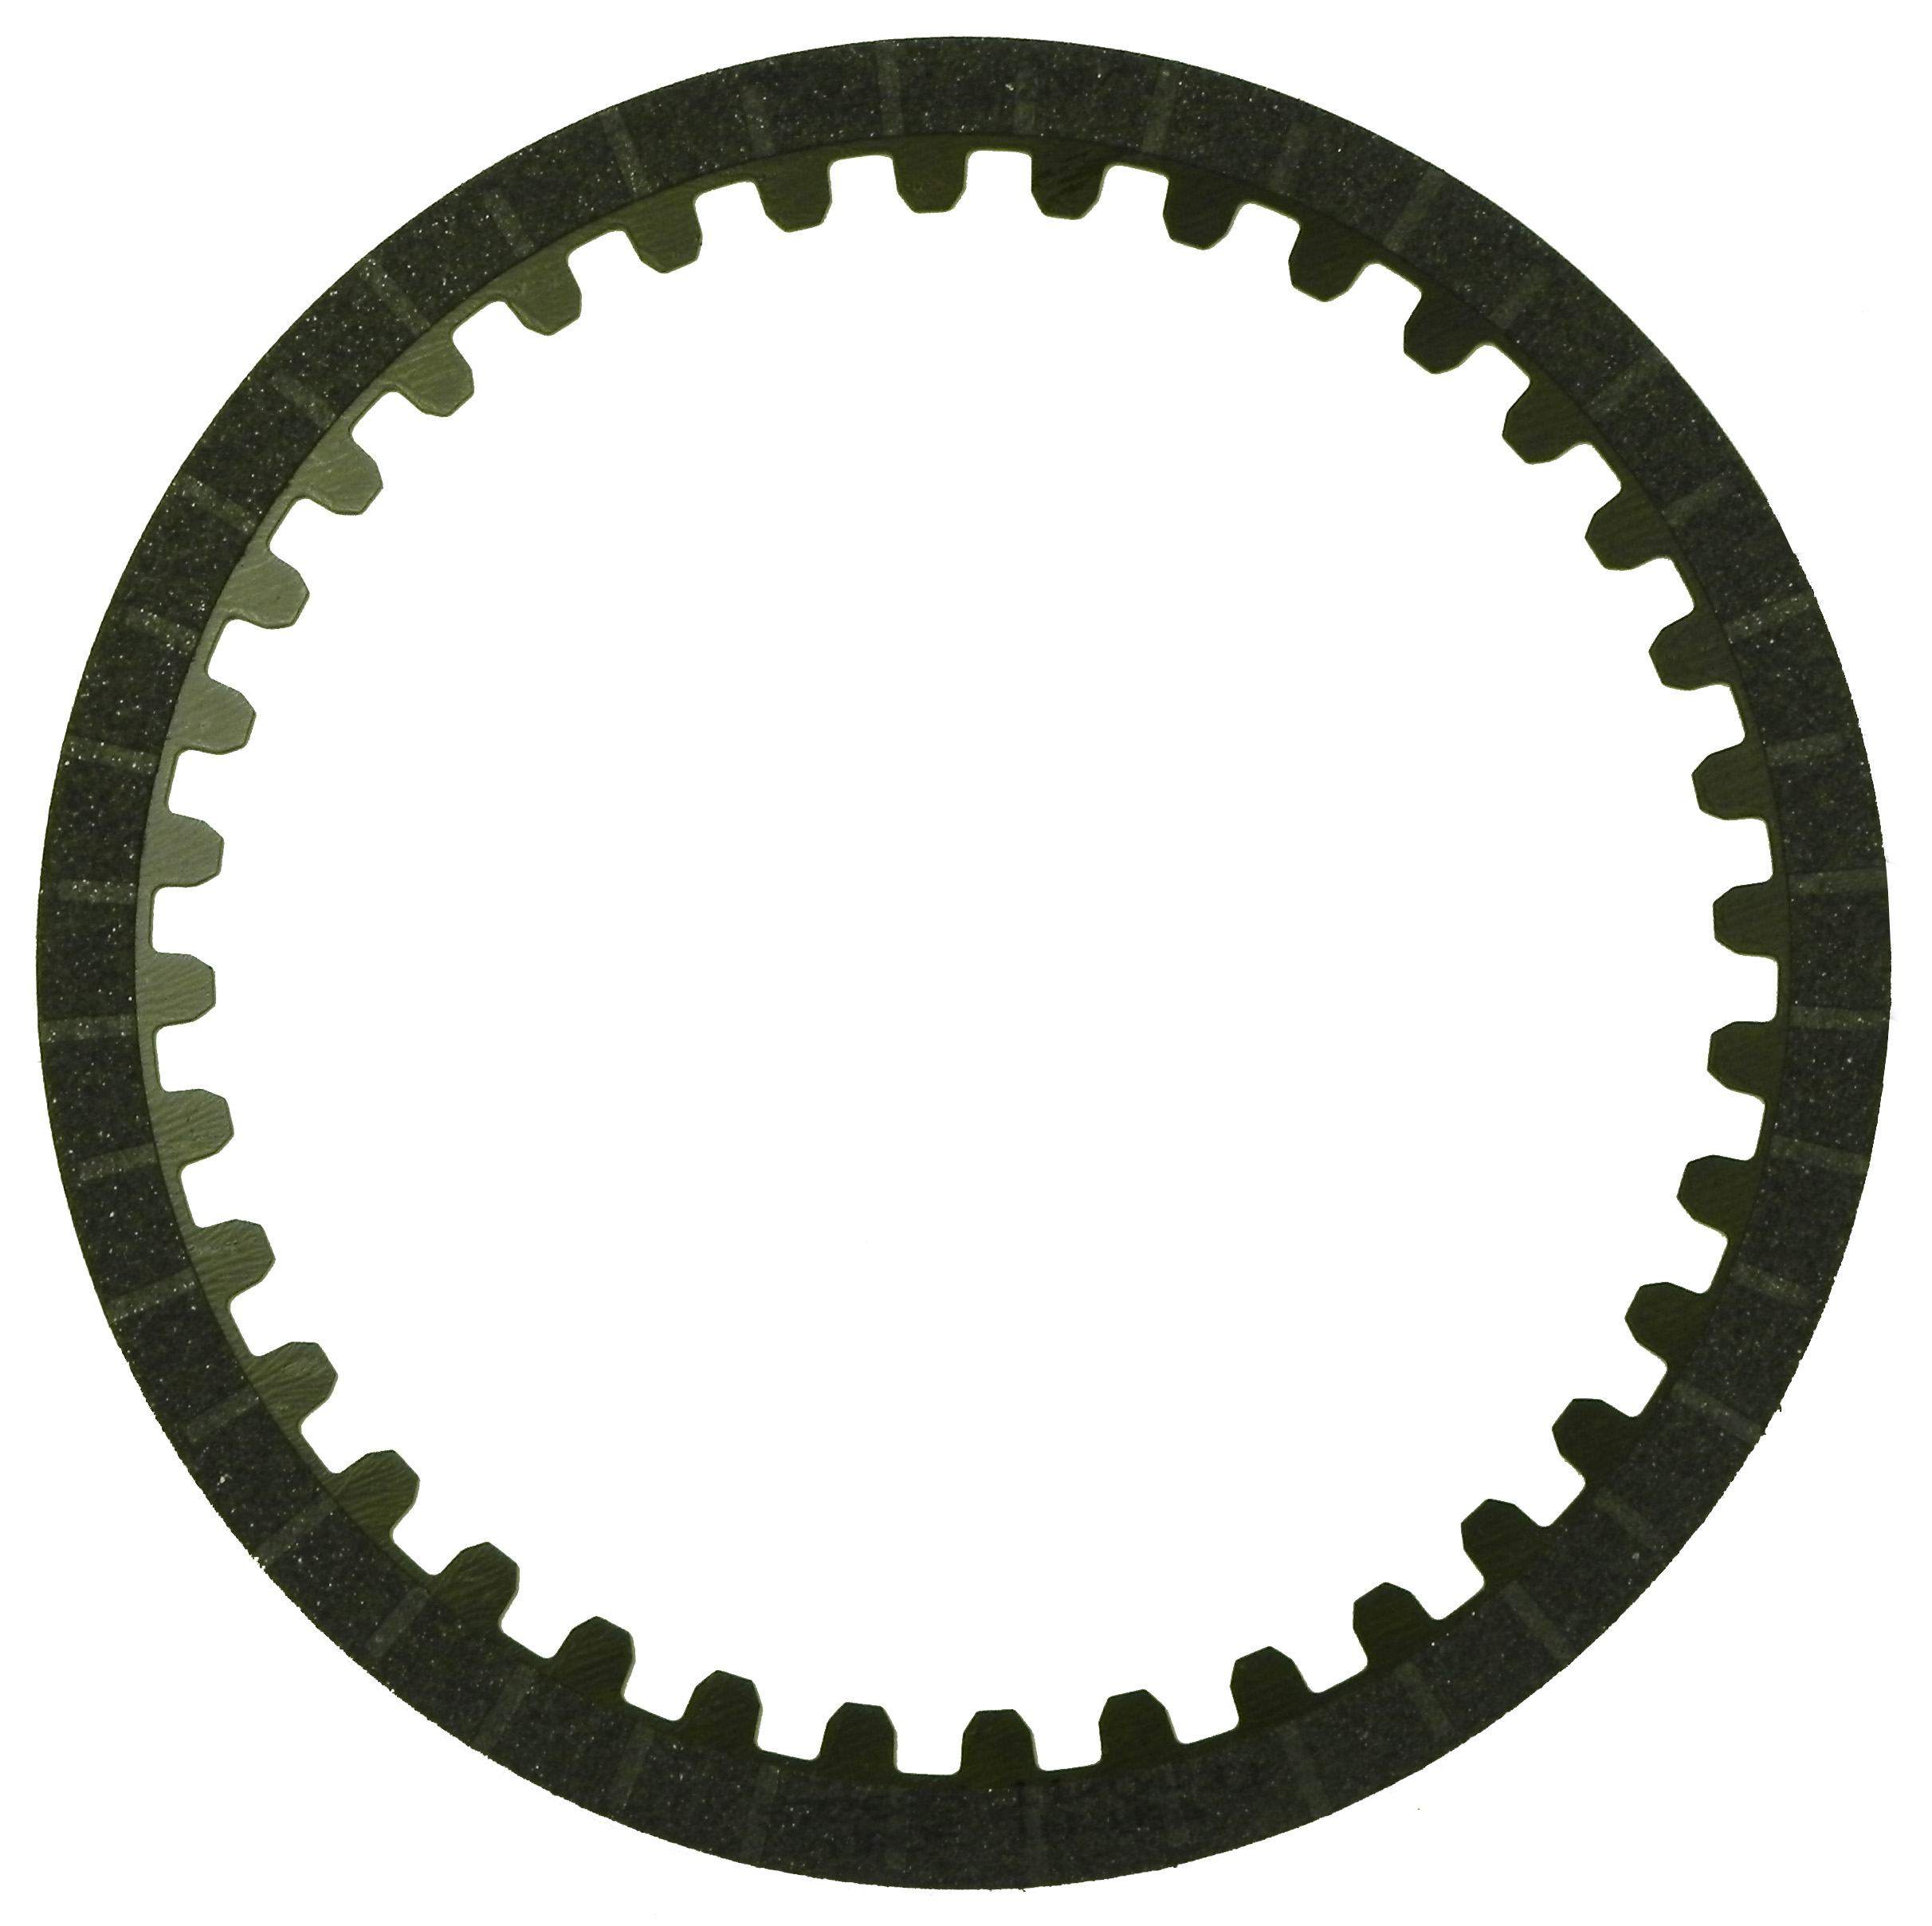 R572685 | 2004-ON Friction Clutch Plate High Energy B1 Overdrive, 2nd Brake High Energy